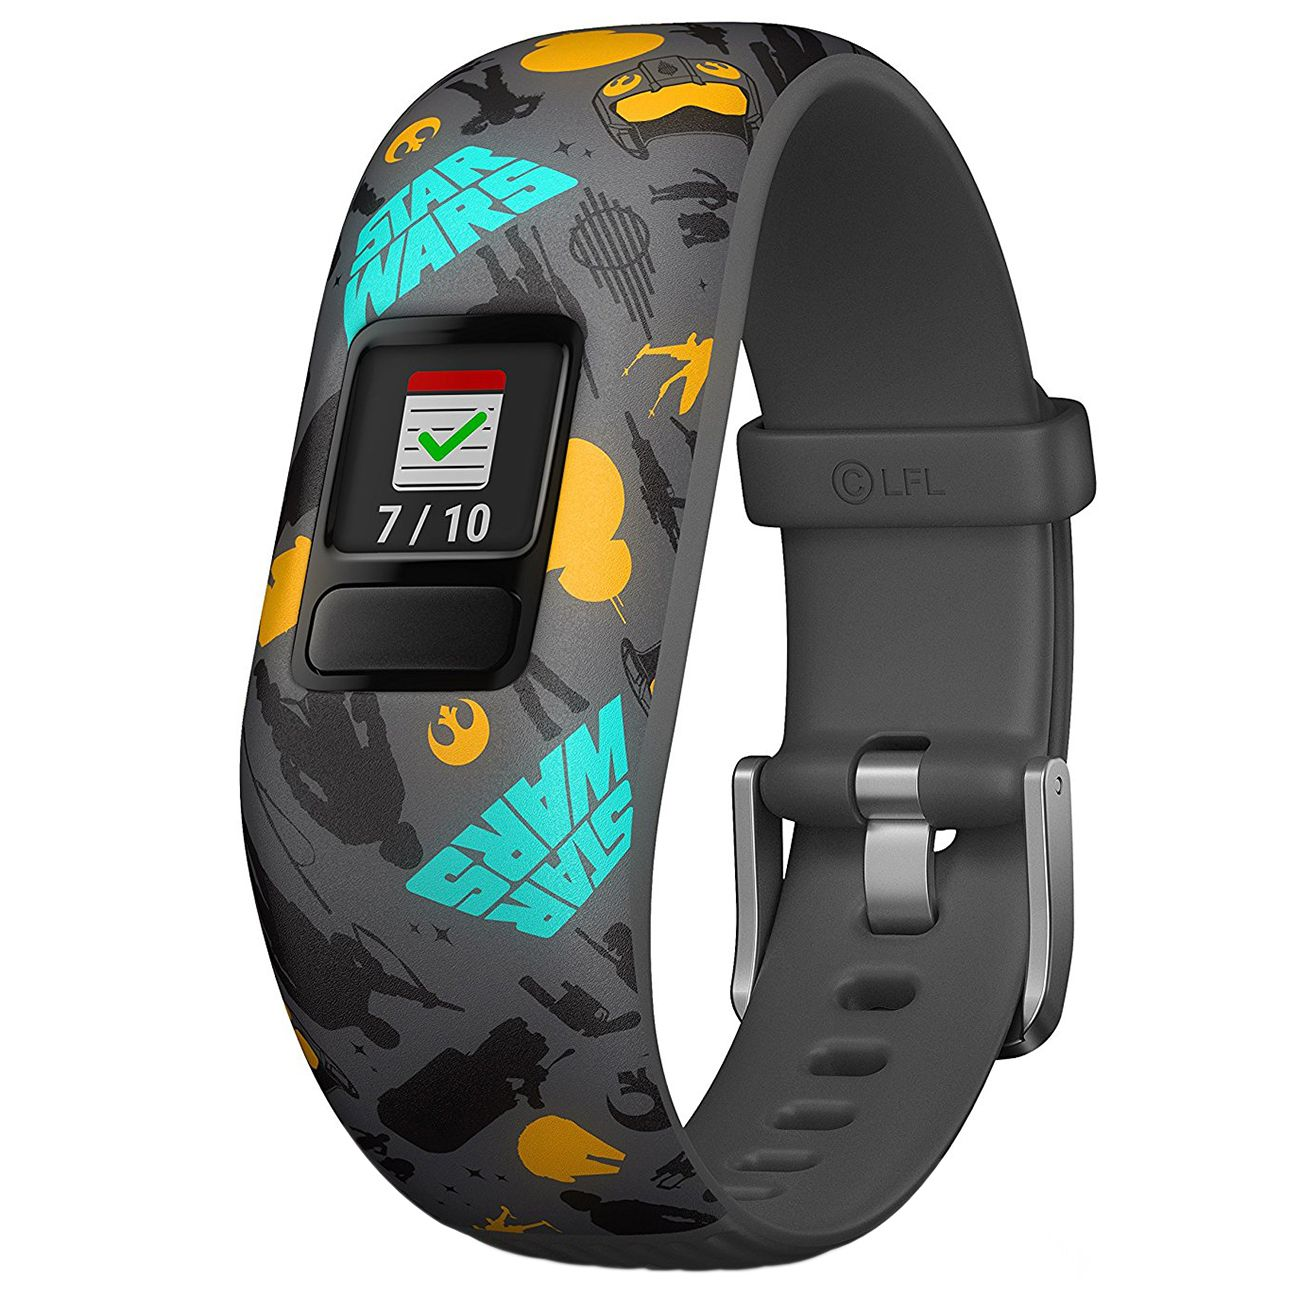 Bratara fitness Garmin Vivofit Jr. 2, Silicon, Bratara reglabila, Star Wars, Grey